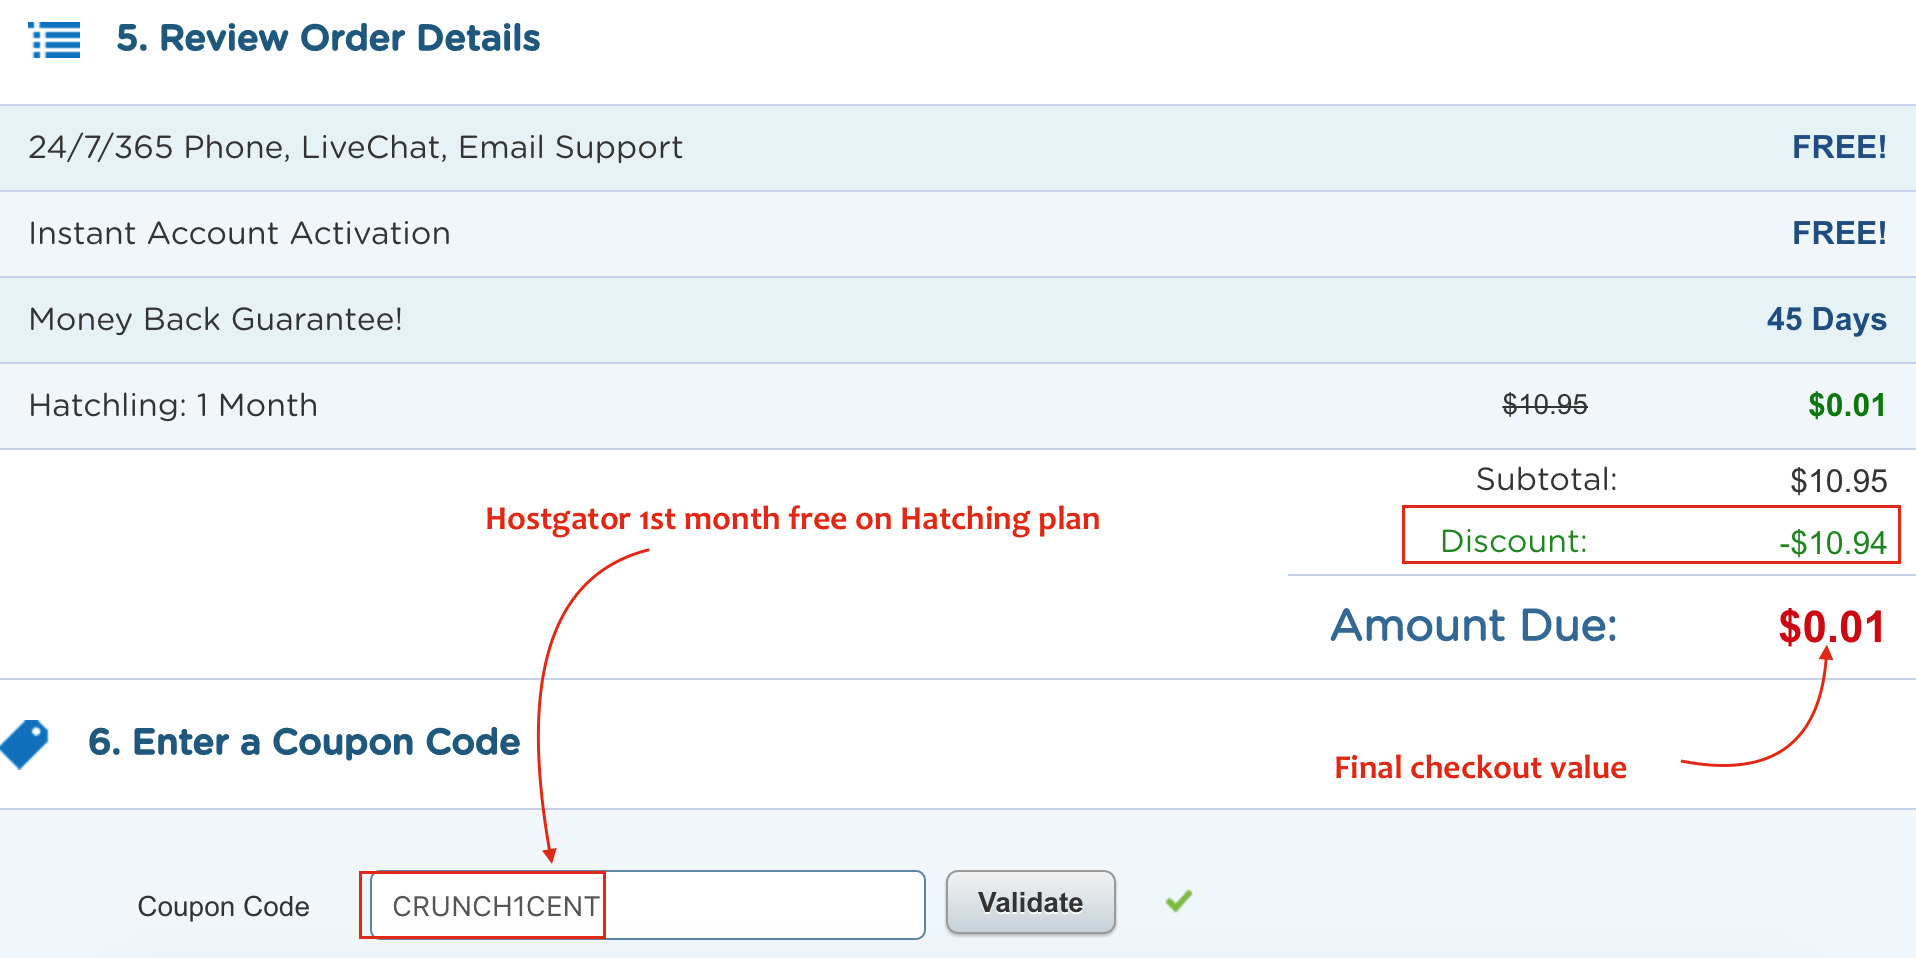 Hostgator 1st month free on Hatching plan